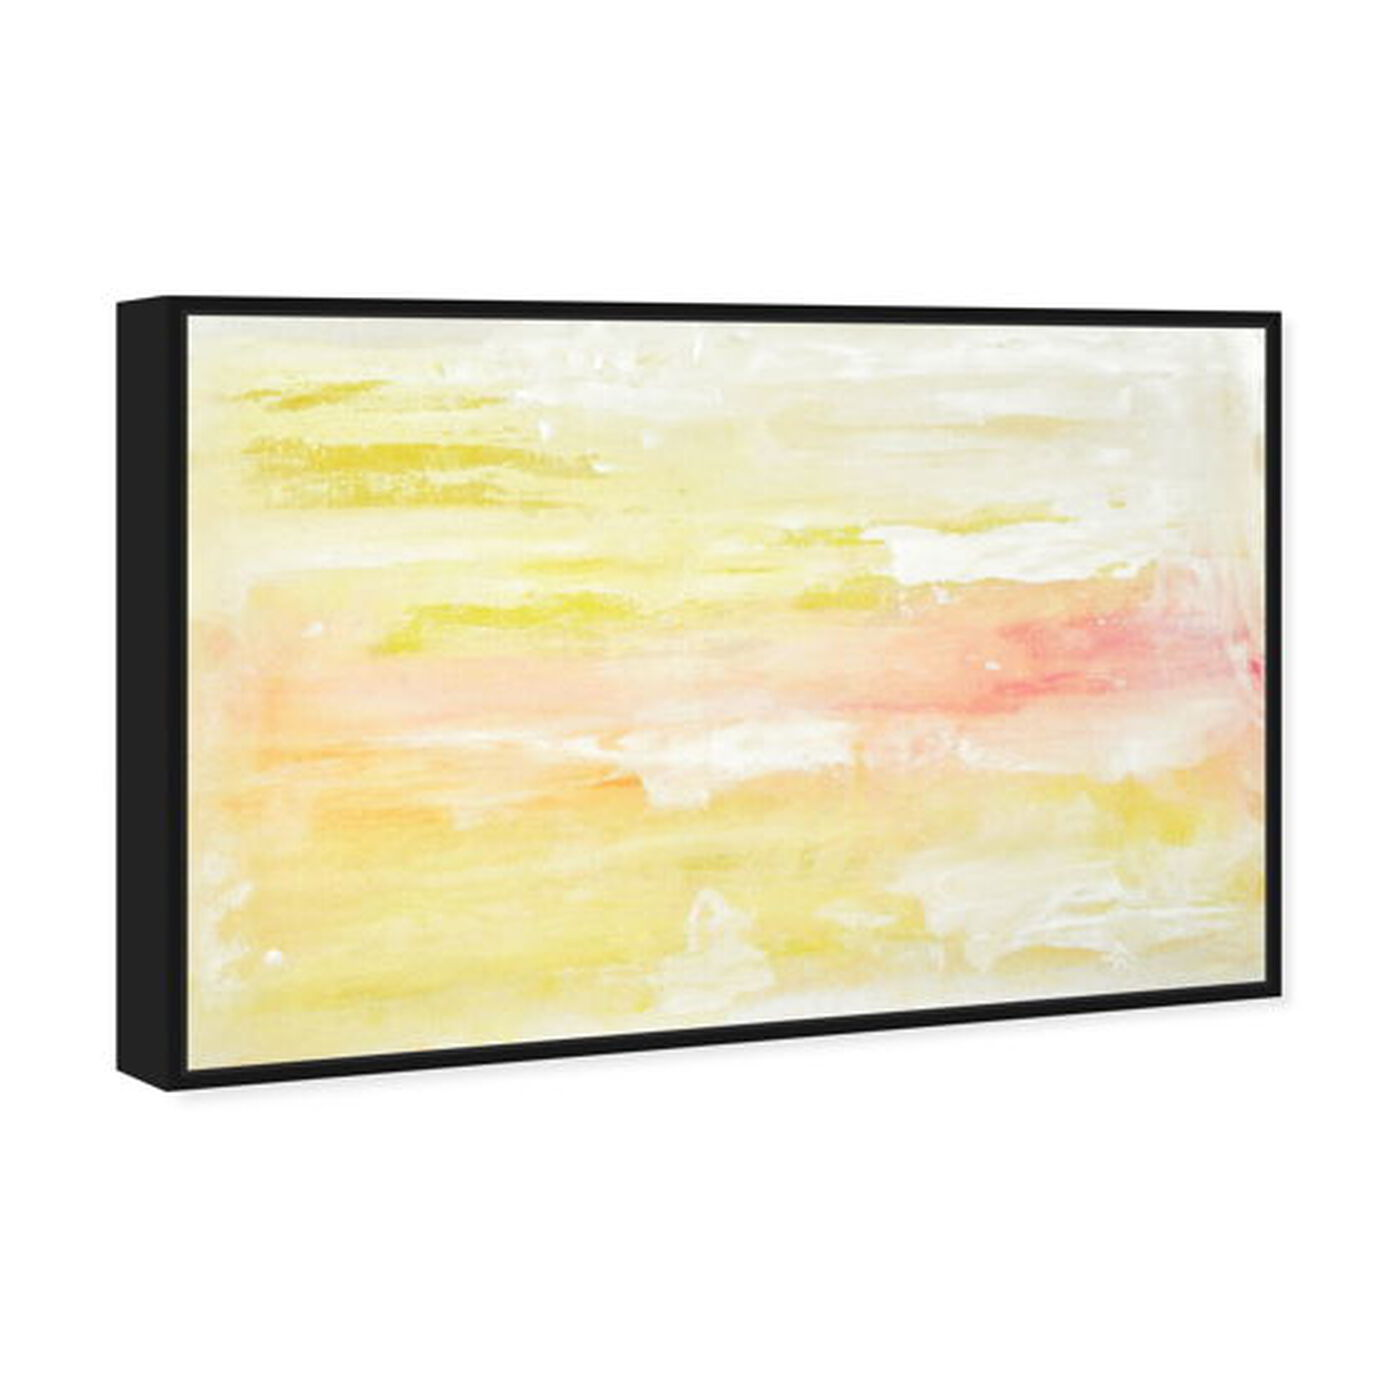 Angled view of Peaceful Sunset featuring abstract and paint art.